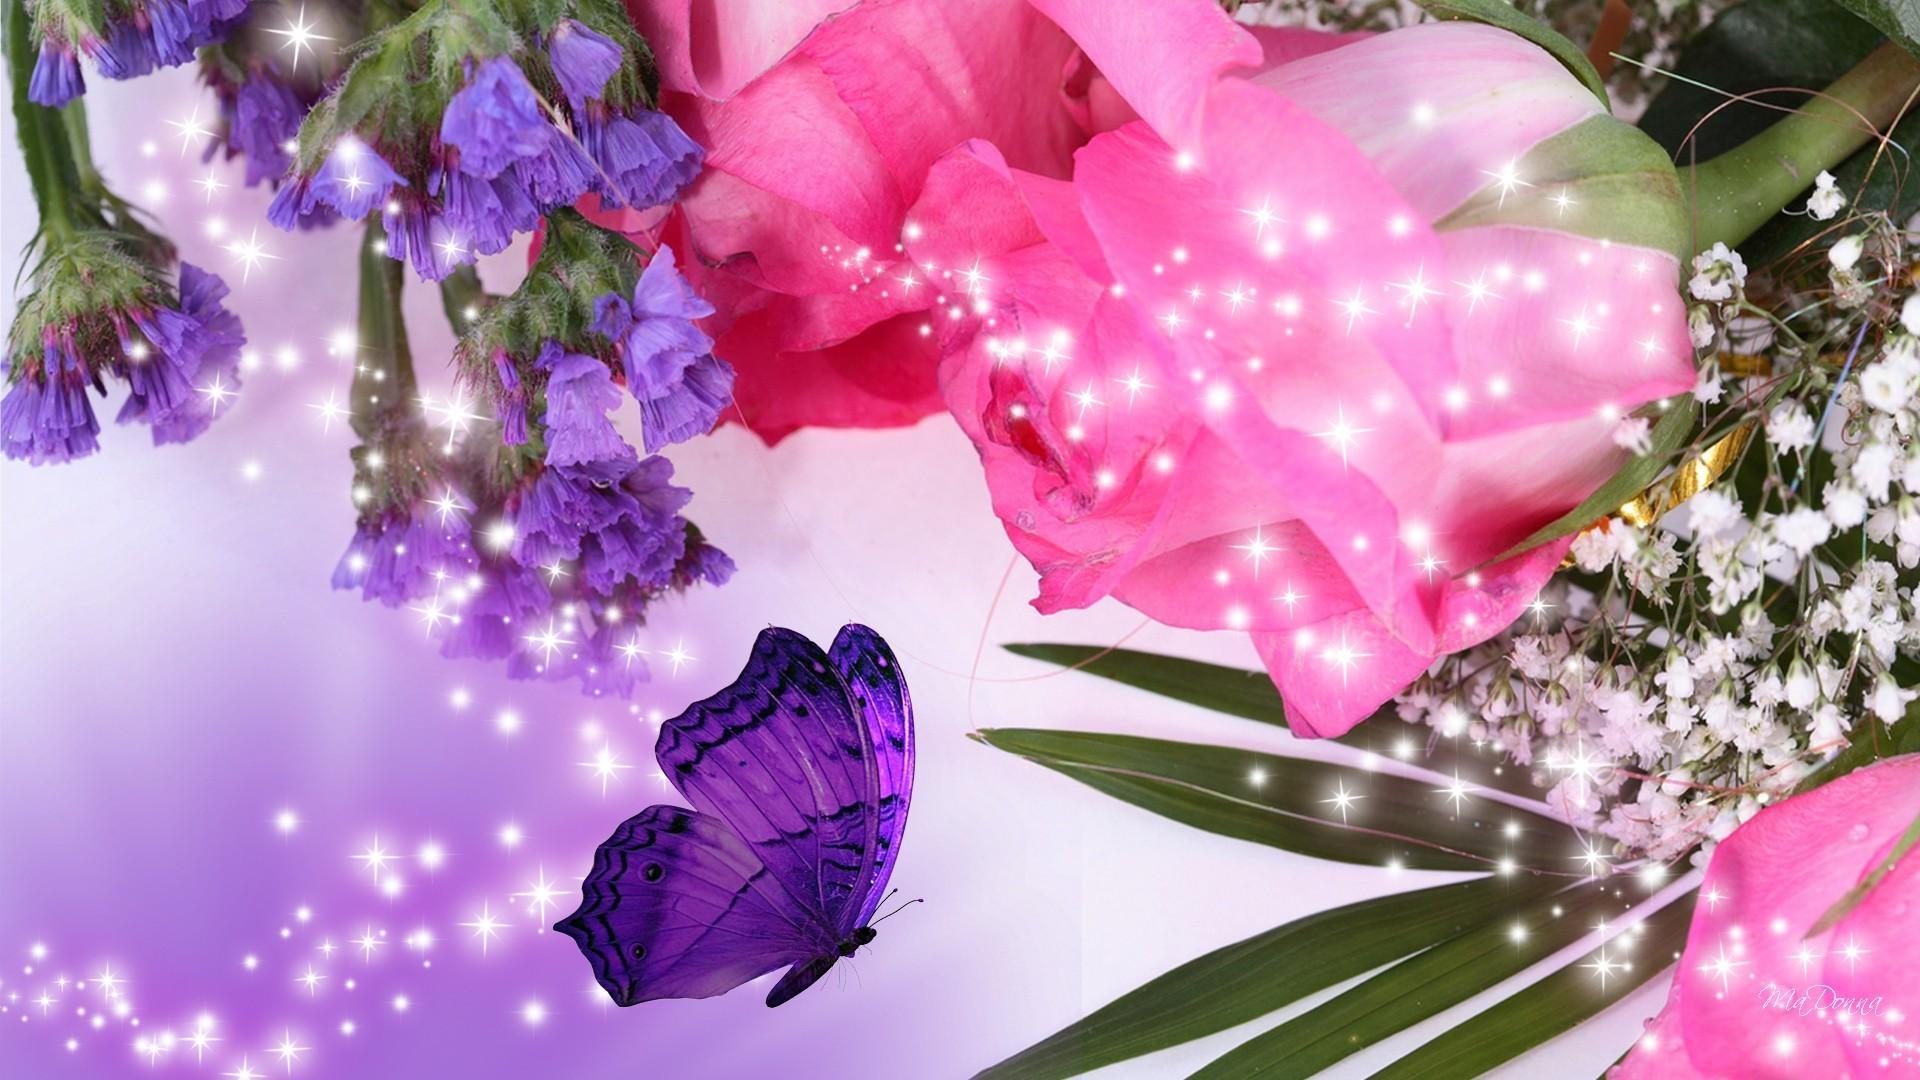 Pink roses and purple flowers wallpaper allwallpaper 6586 pc pink roses and purple flowers wallpaper mightylinksfo